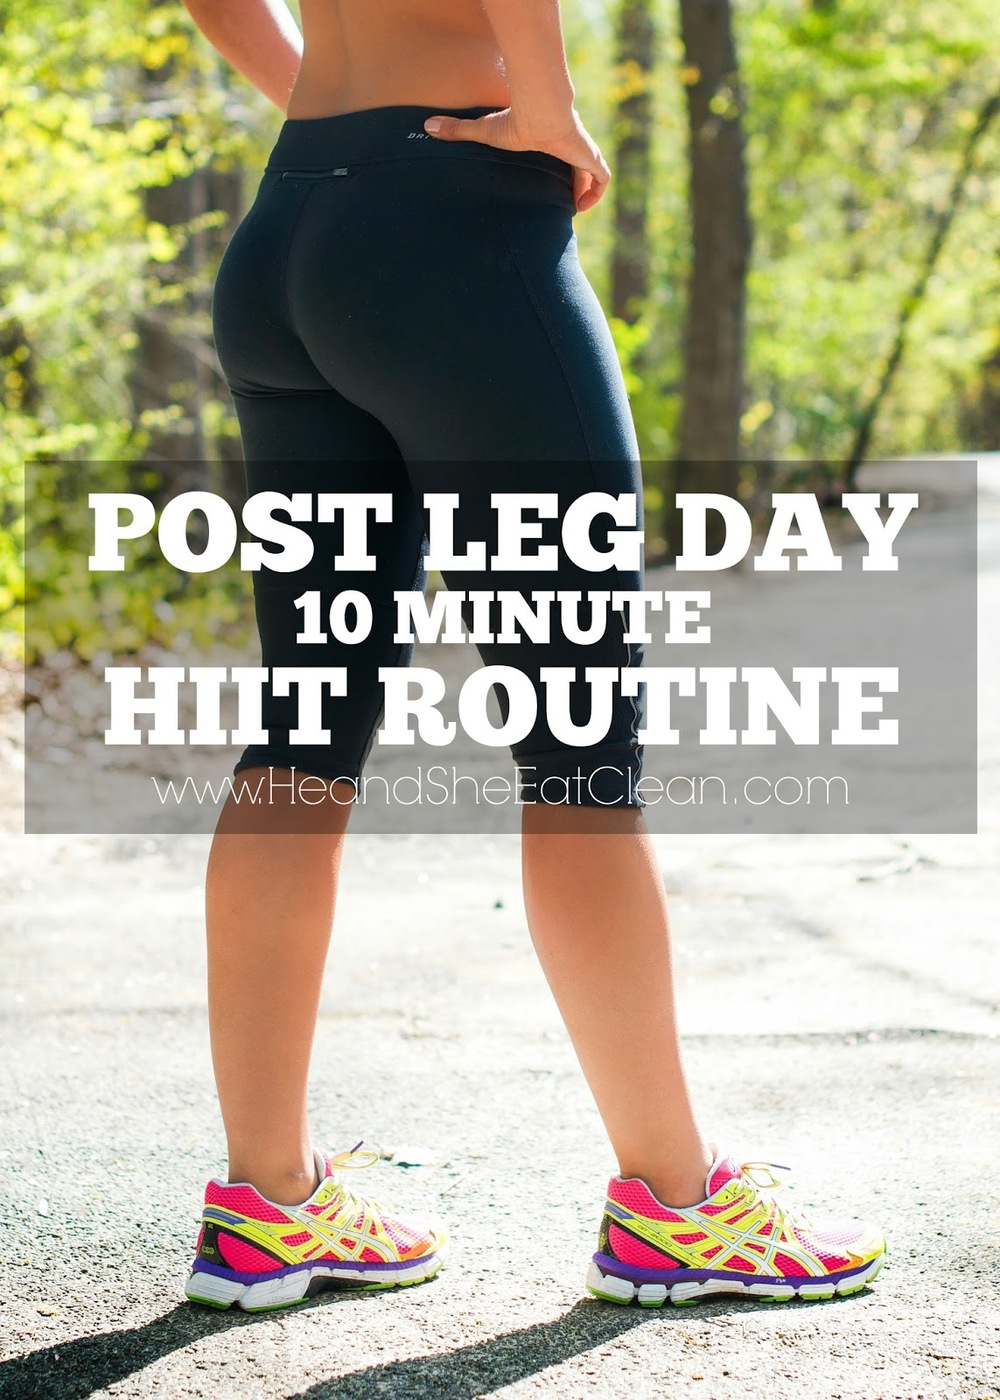 Leg Day 10 Minute HIIT Routine